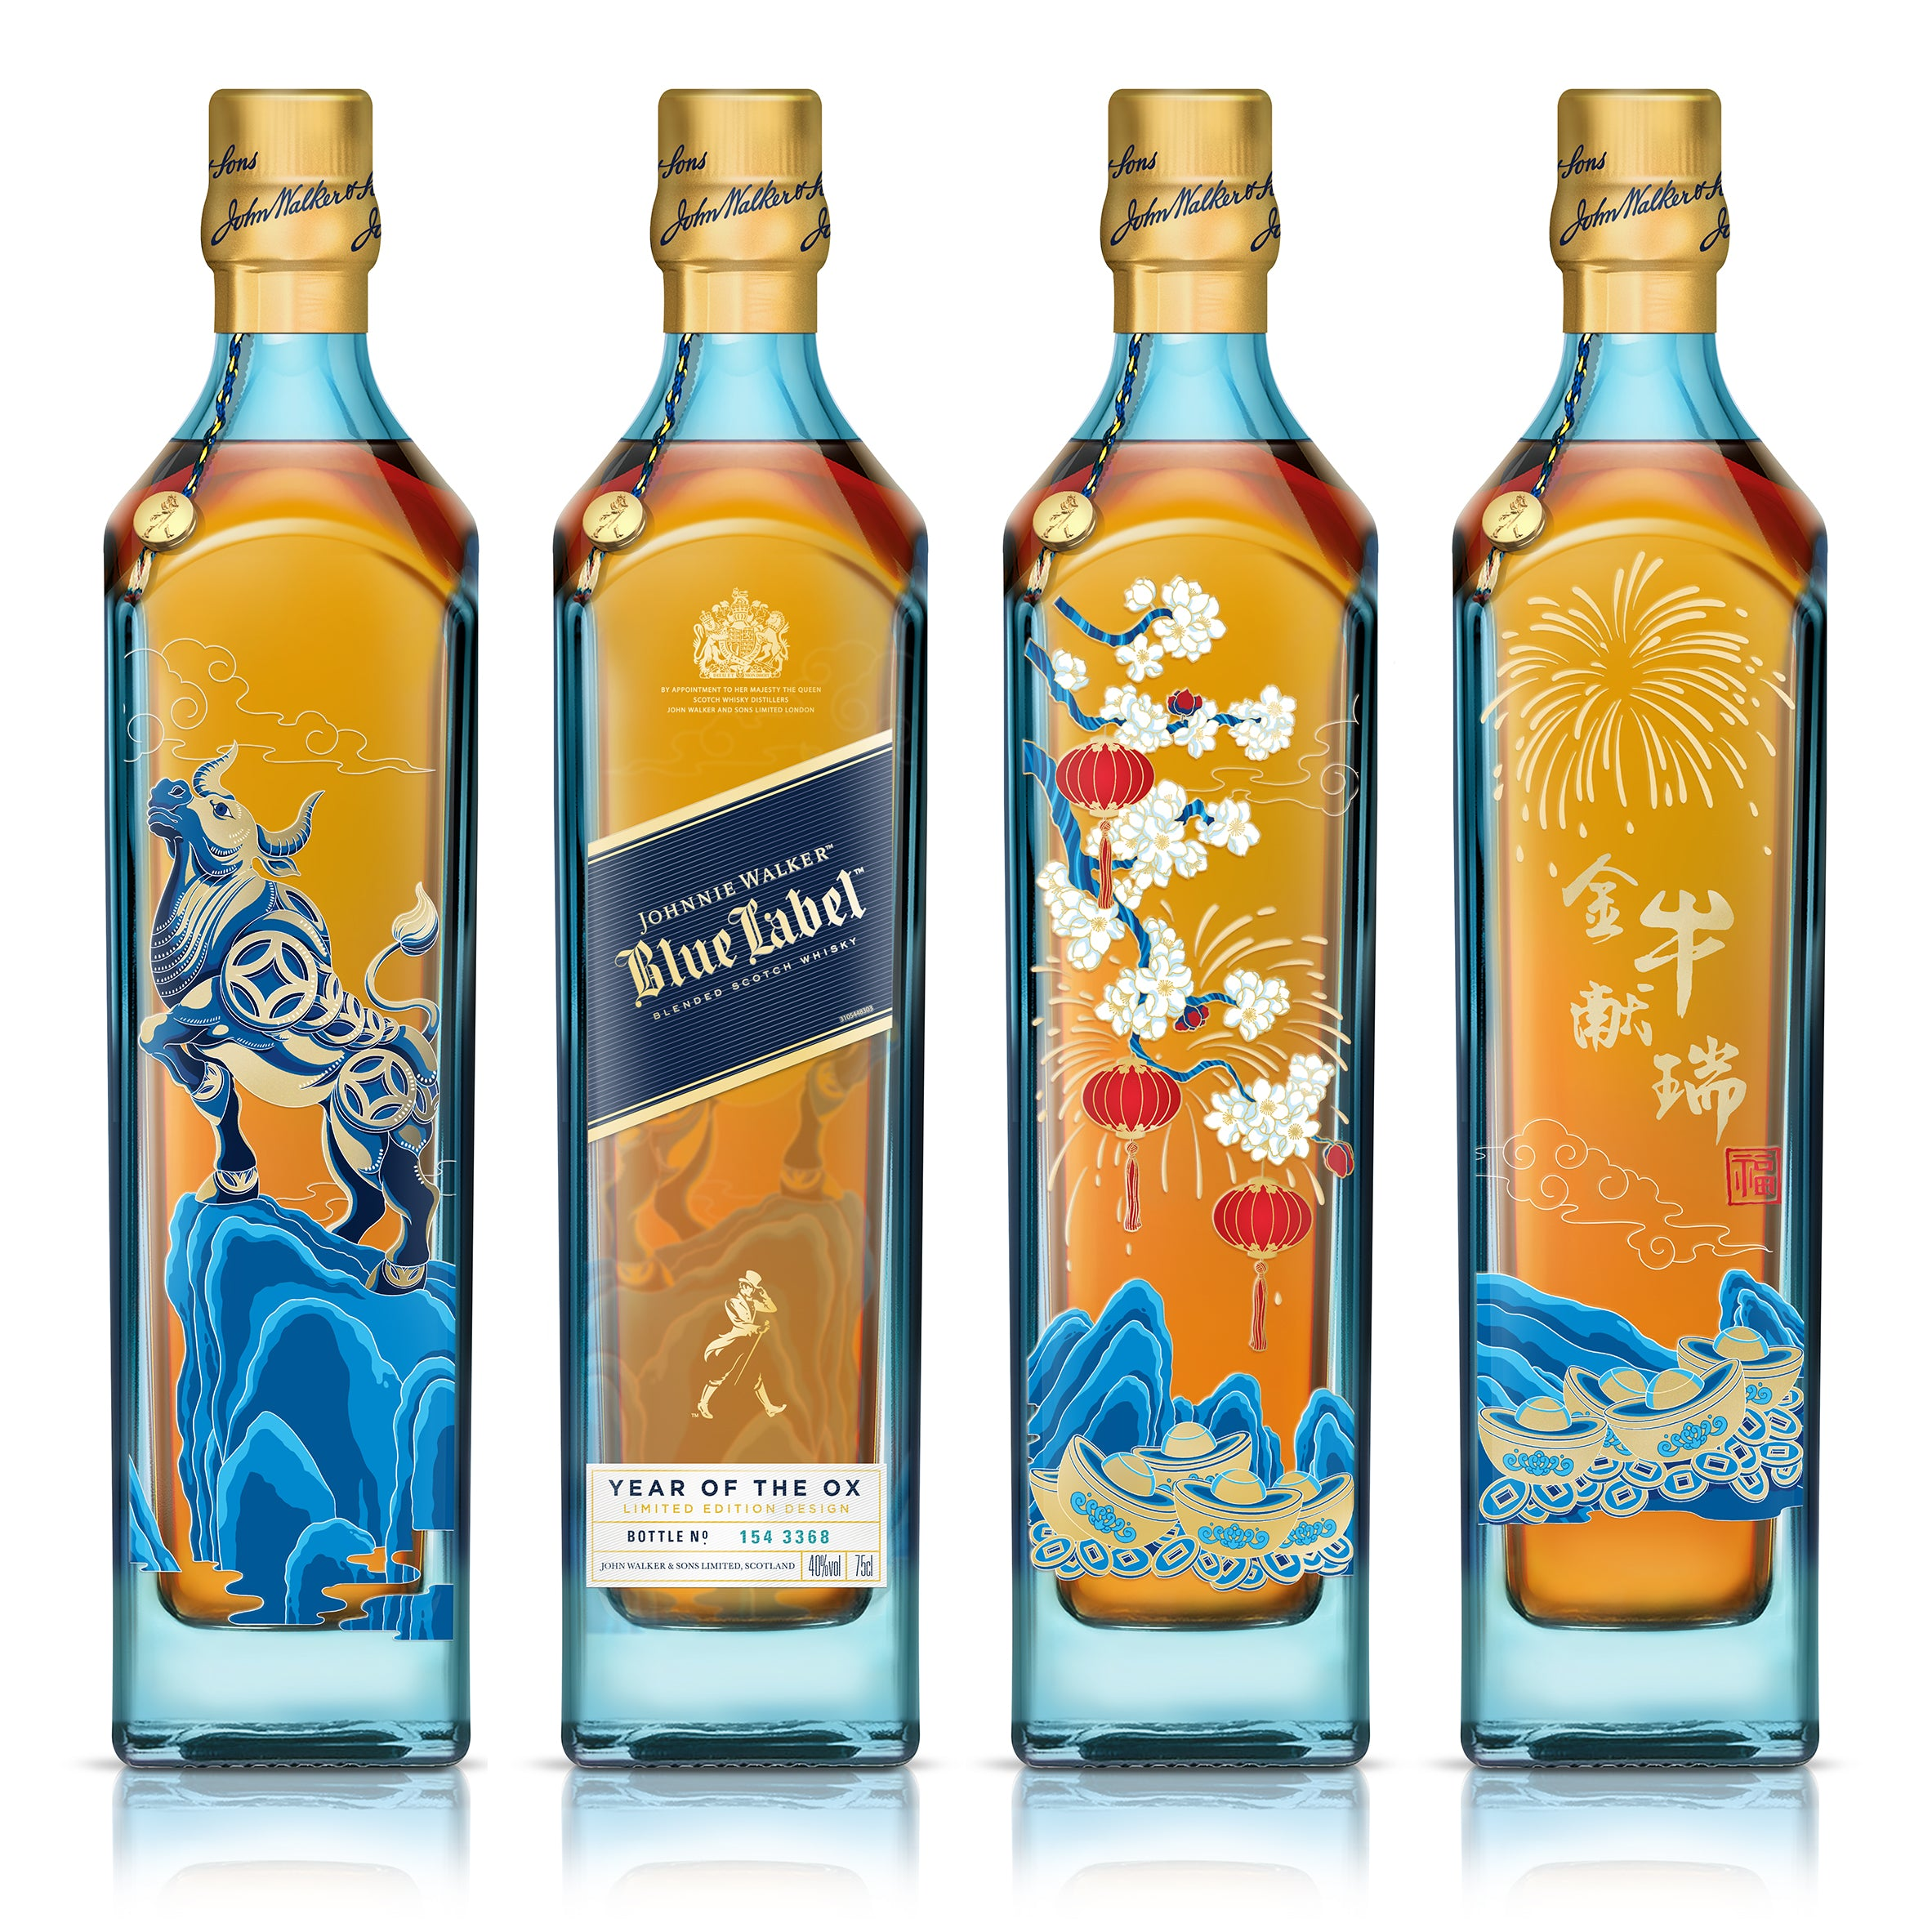 Johnnie Walker Blue Label CNY - Year of the Ox Limited Edition